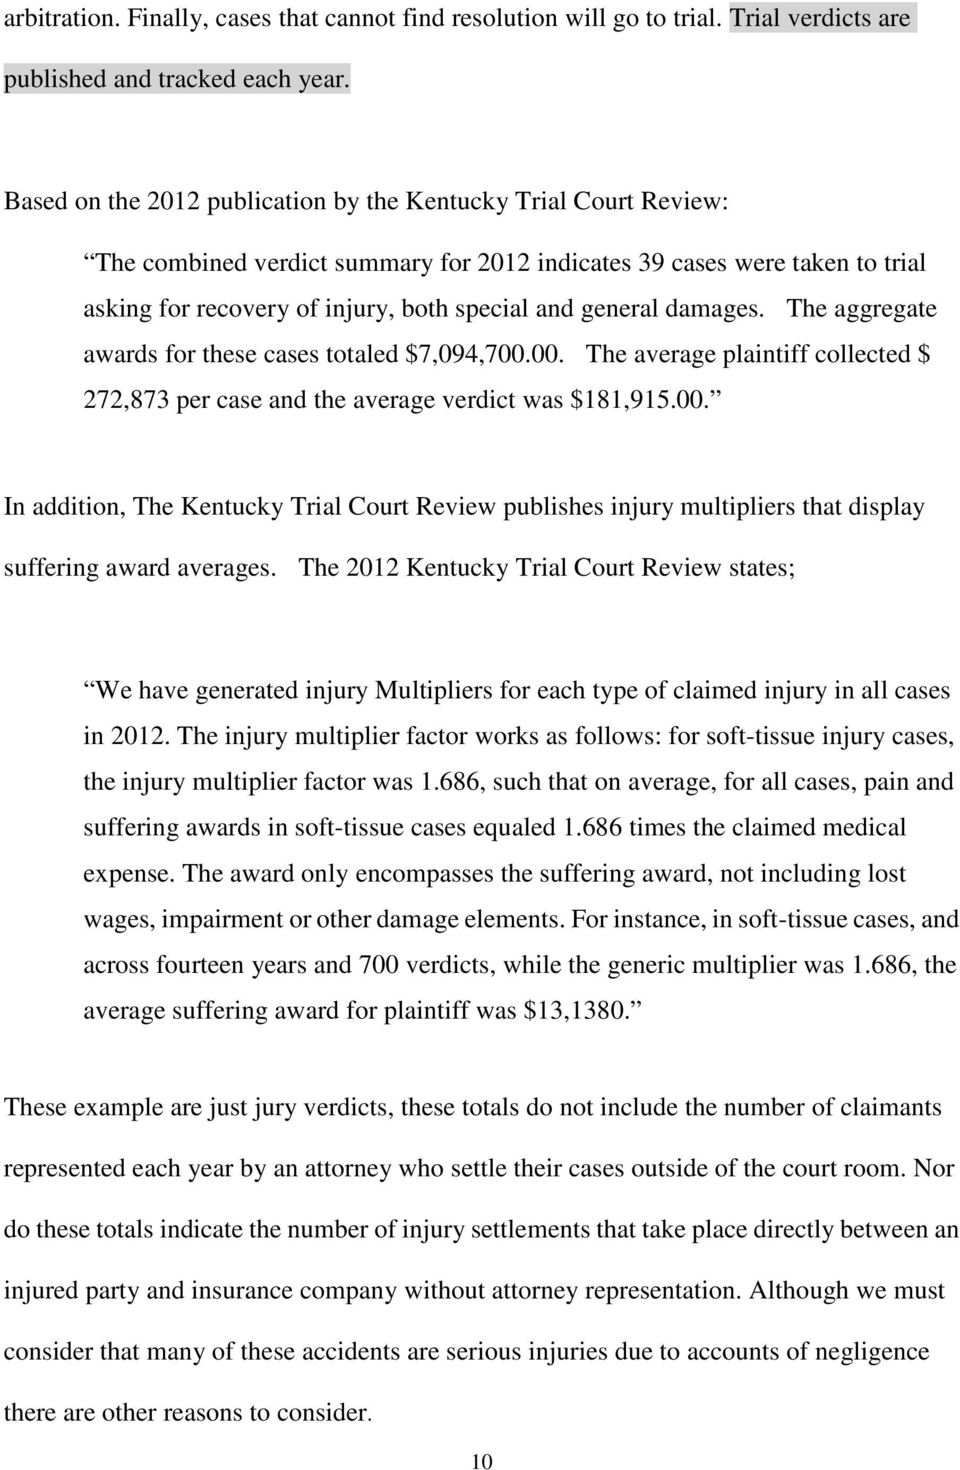 damages. The aggregate awards for these cases totaled $7,094,700.00. The average plaintiff collected $ 272,873 per case and the average verdict was $181,915.00. In addition, The Kentucky Trial Court Review publishes injury multipliers that display suffering award averages.